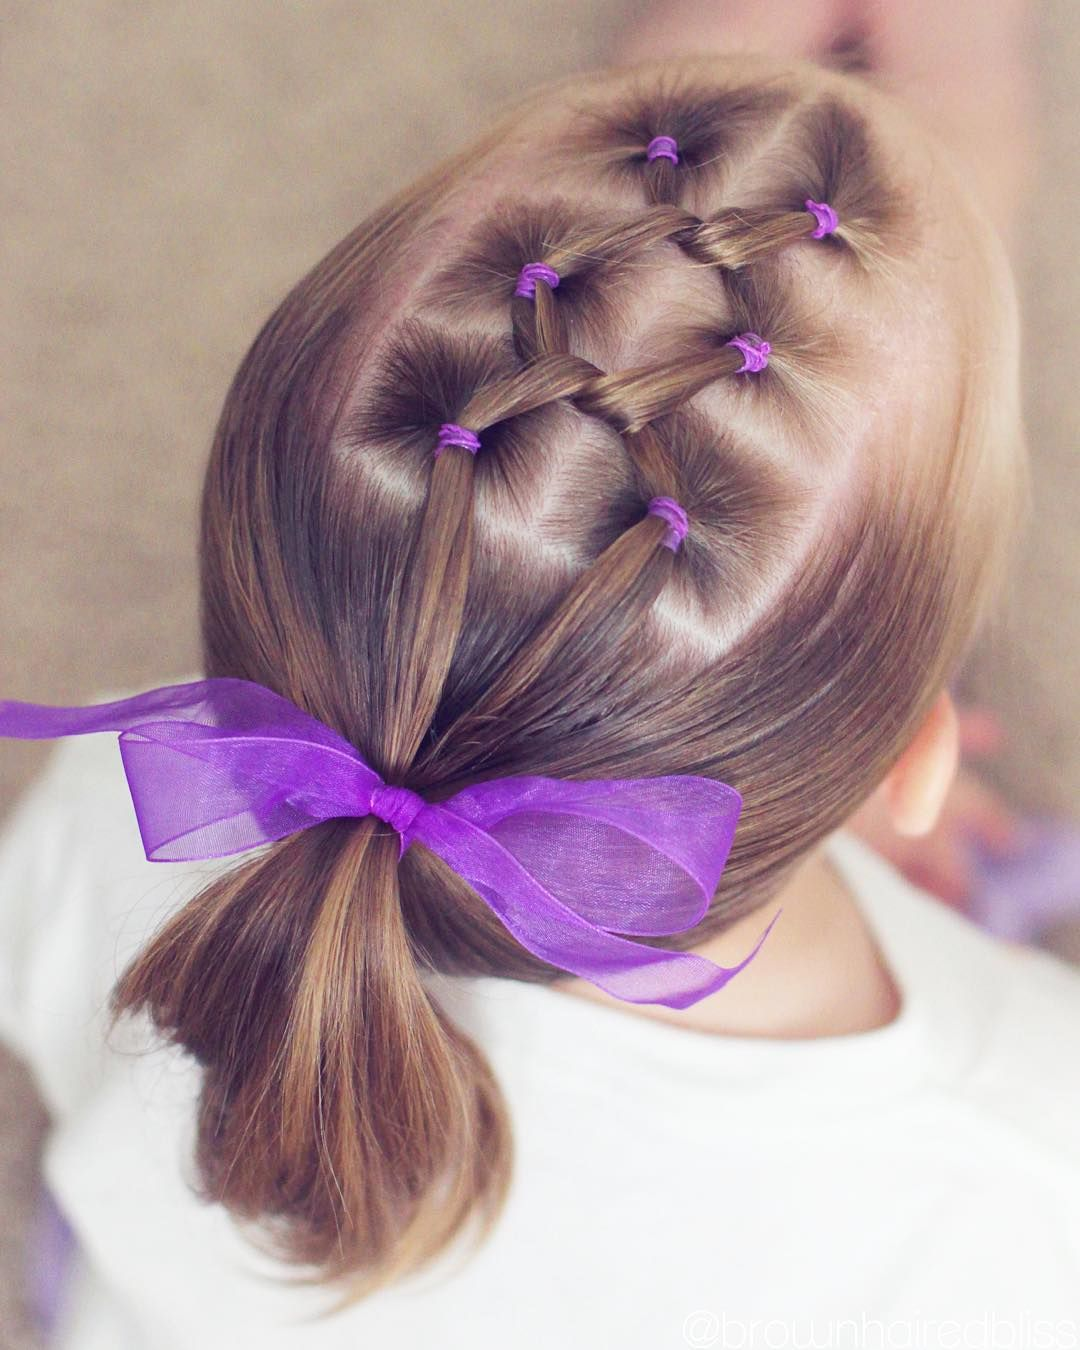 Hairstyles For Toddlers Magnificent 40 Cool Hairstyles For Little Girls On Any Occasion  Toddler